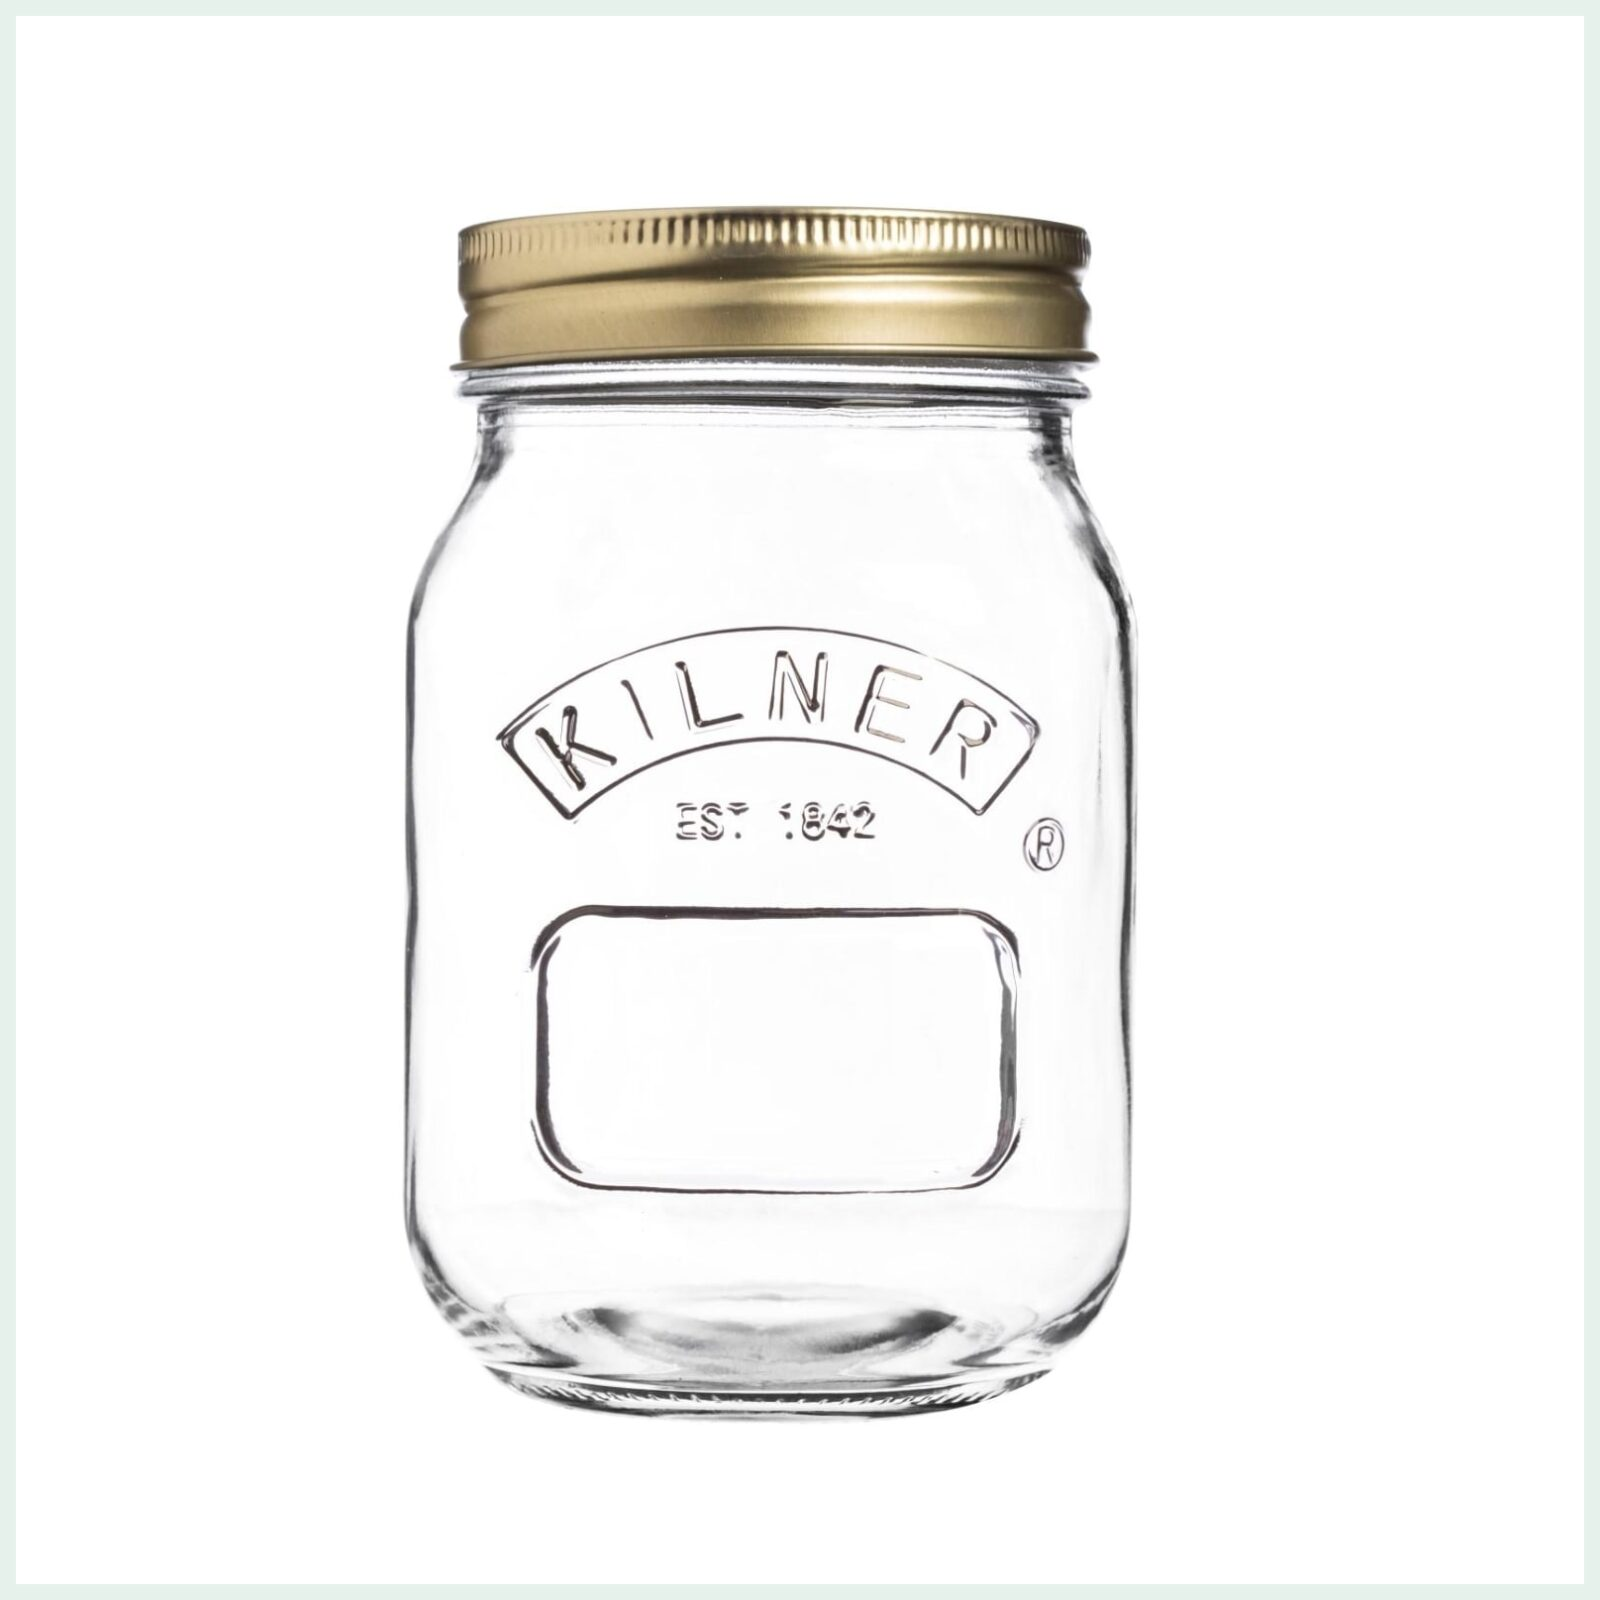 500ml kilner screw top jars for preserving, jam making and water bath canning